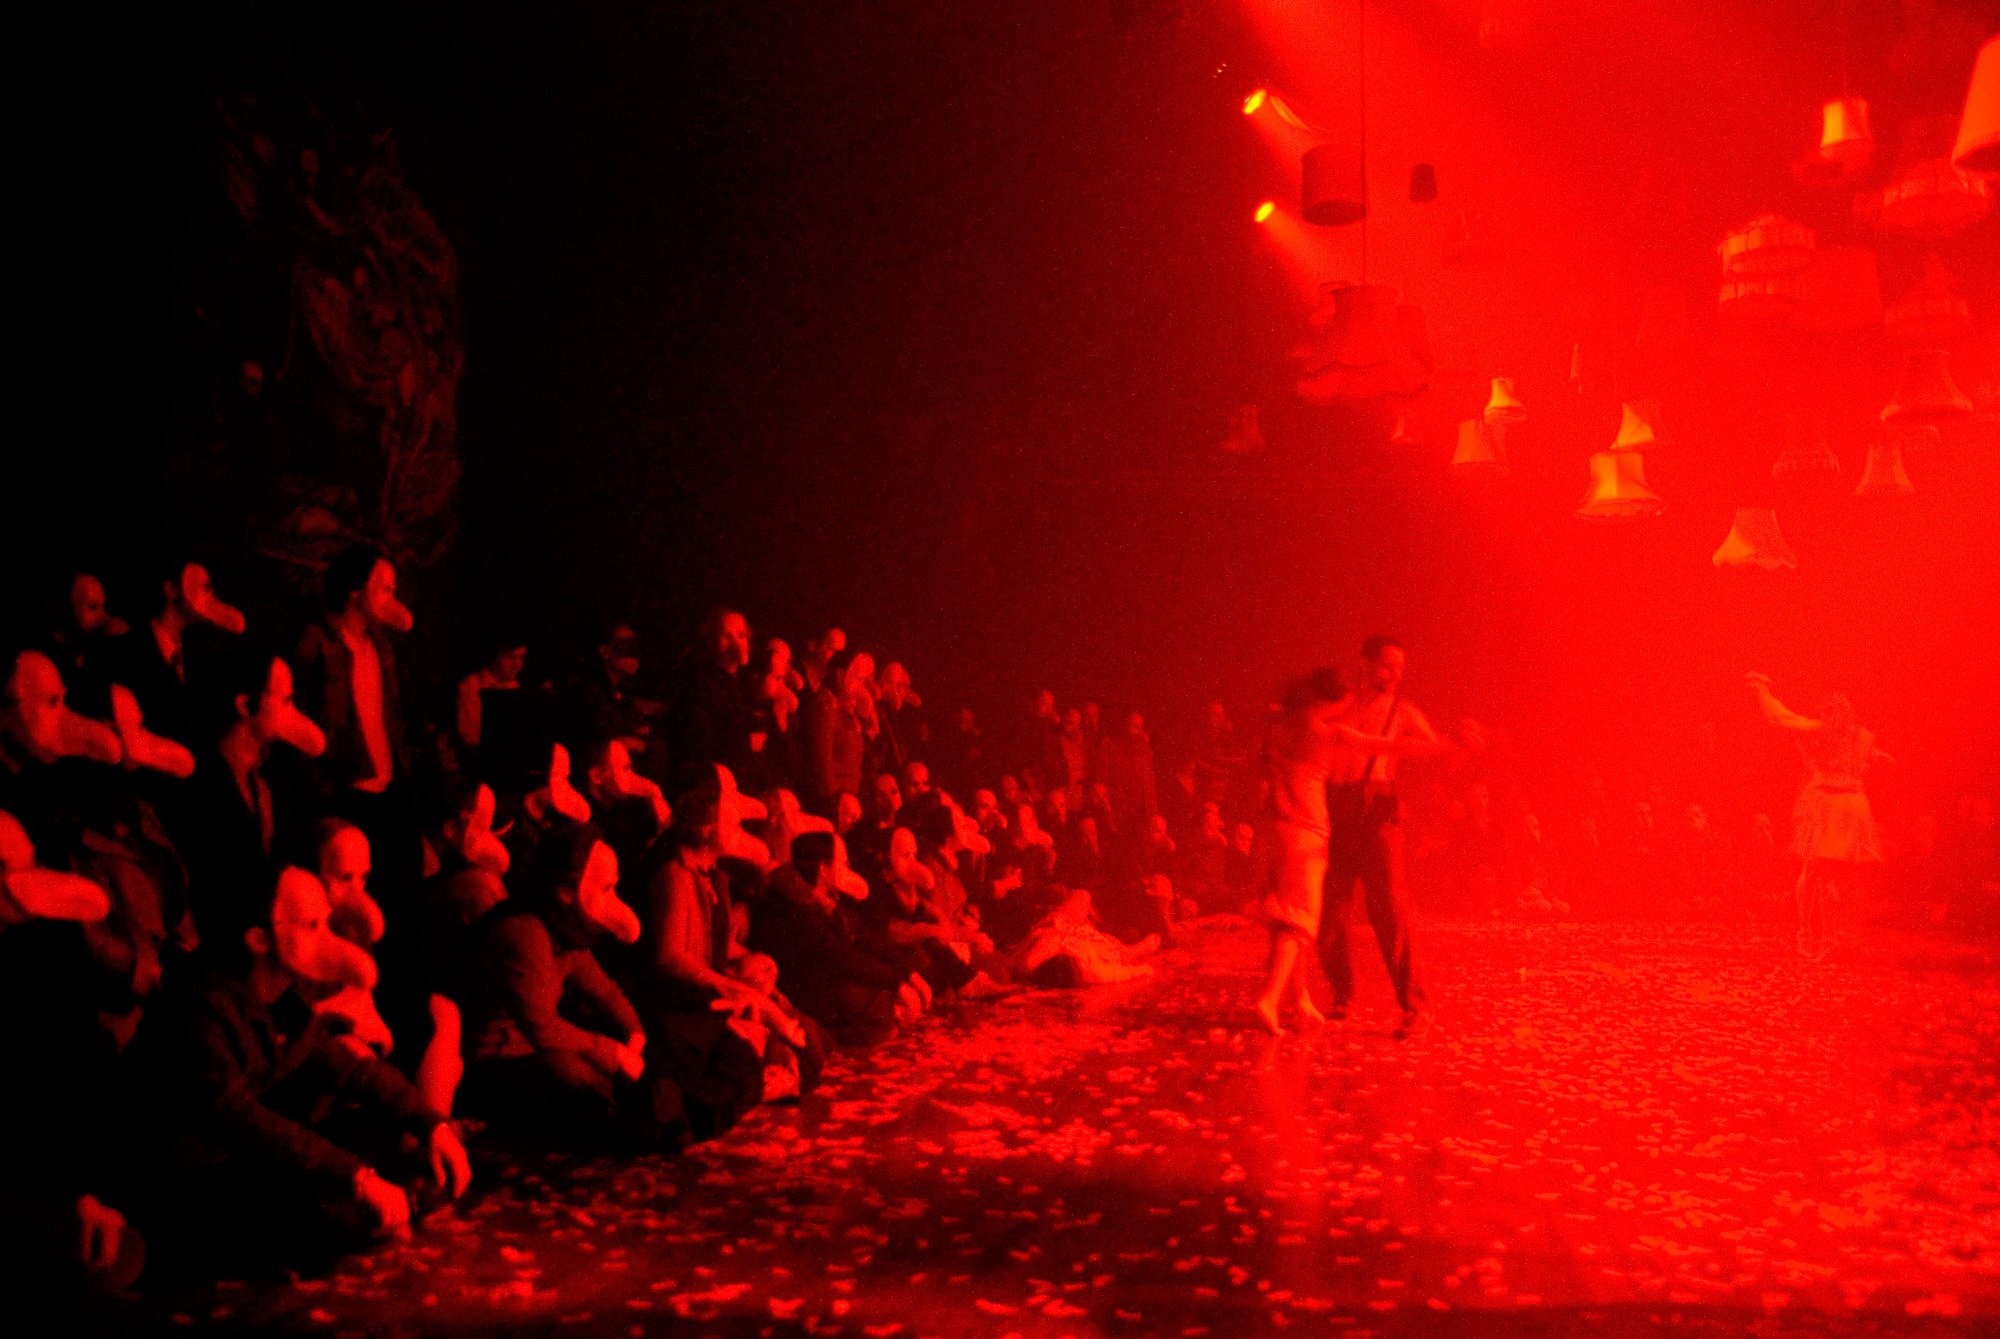 Photograph Of Punchdrunk S The Masque Of The Red